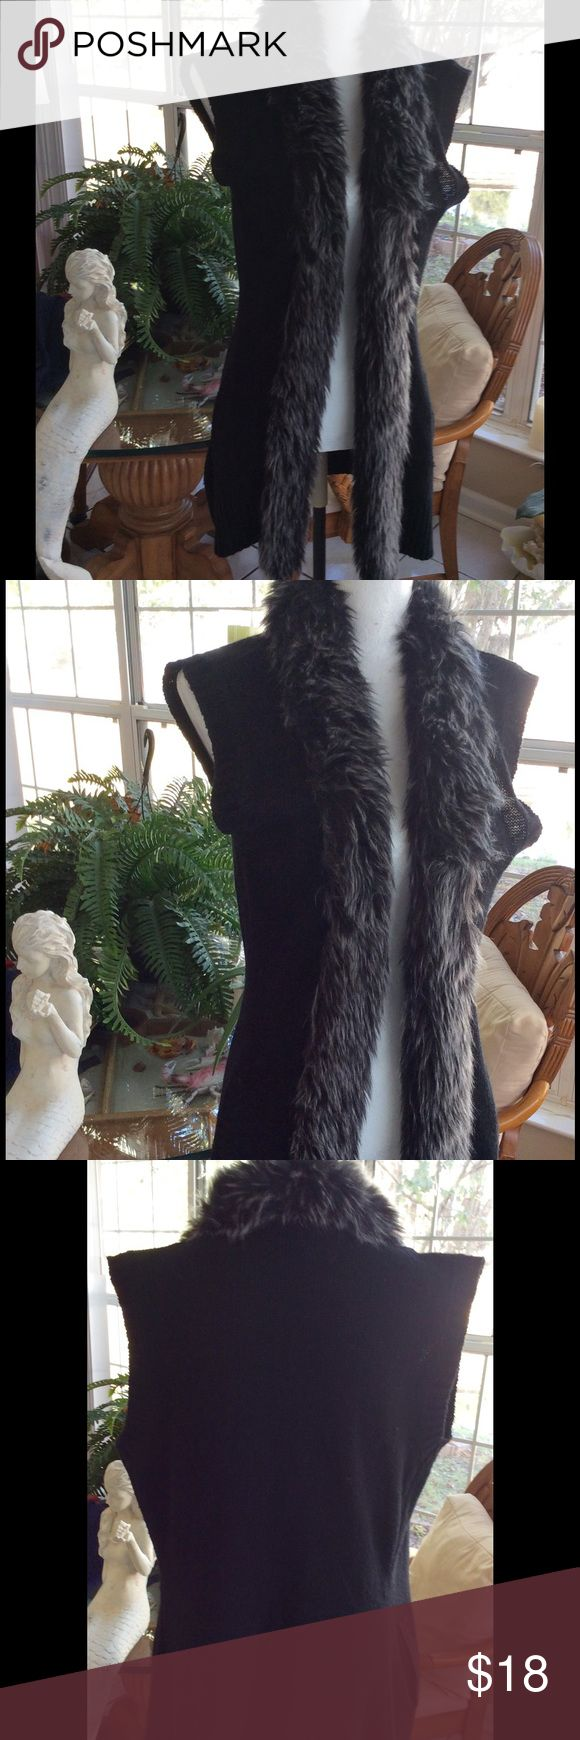 "Cardigan sweater vest Rue 21 Long black sweater cardigan vest with faux fur collar.  Measurements are shoulder 19"", armpit to armpit is 21"", length is 31.5"".  Super cute. Rue21 Sweaters Cardigans"